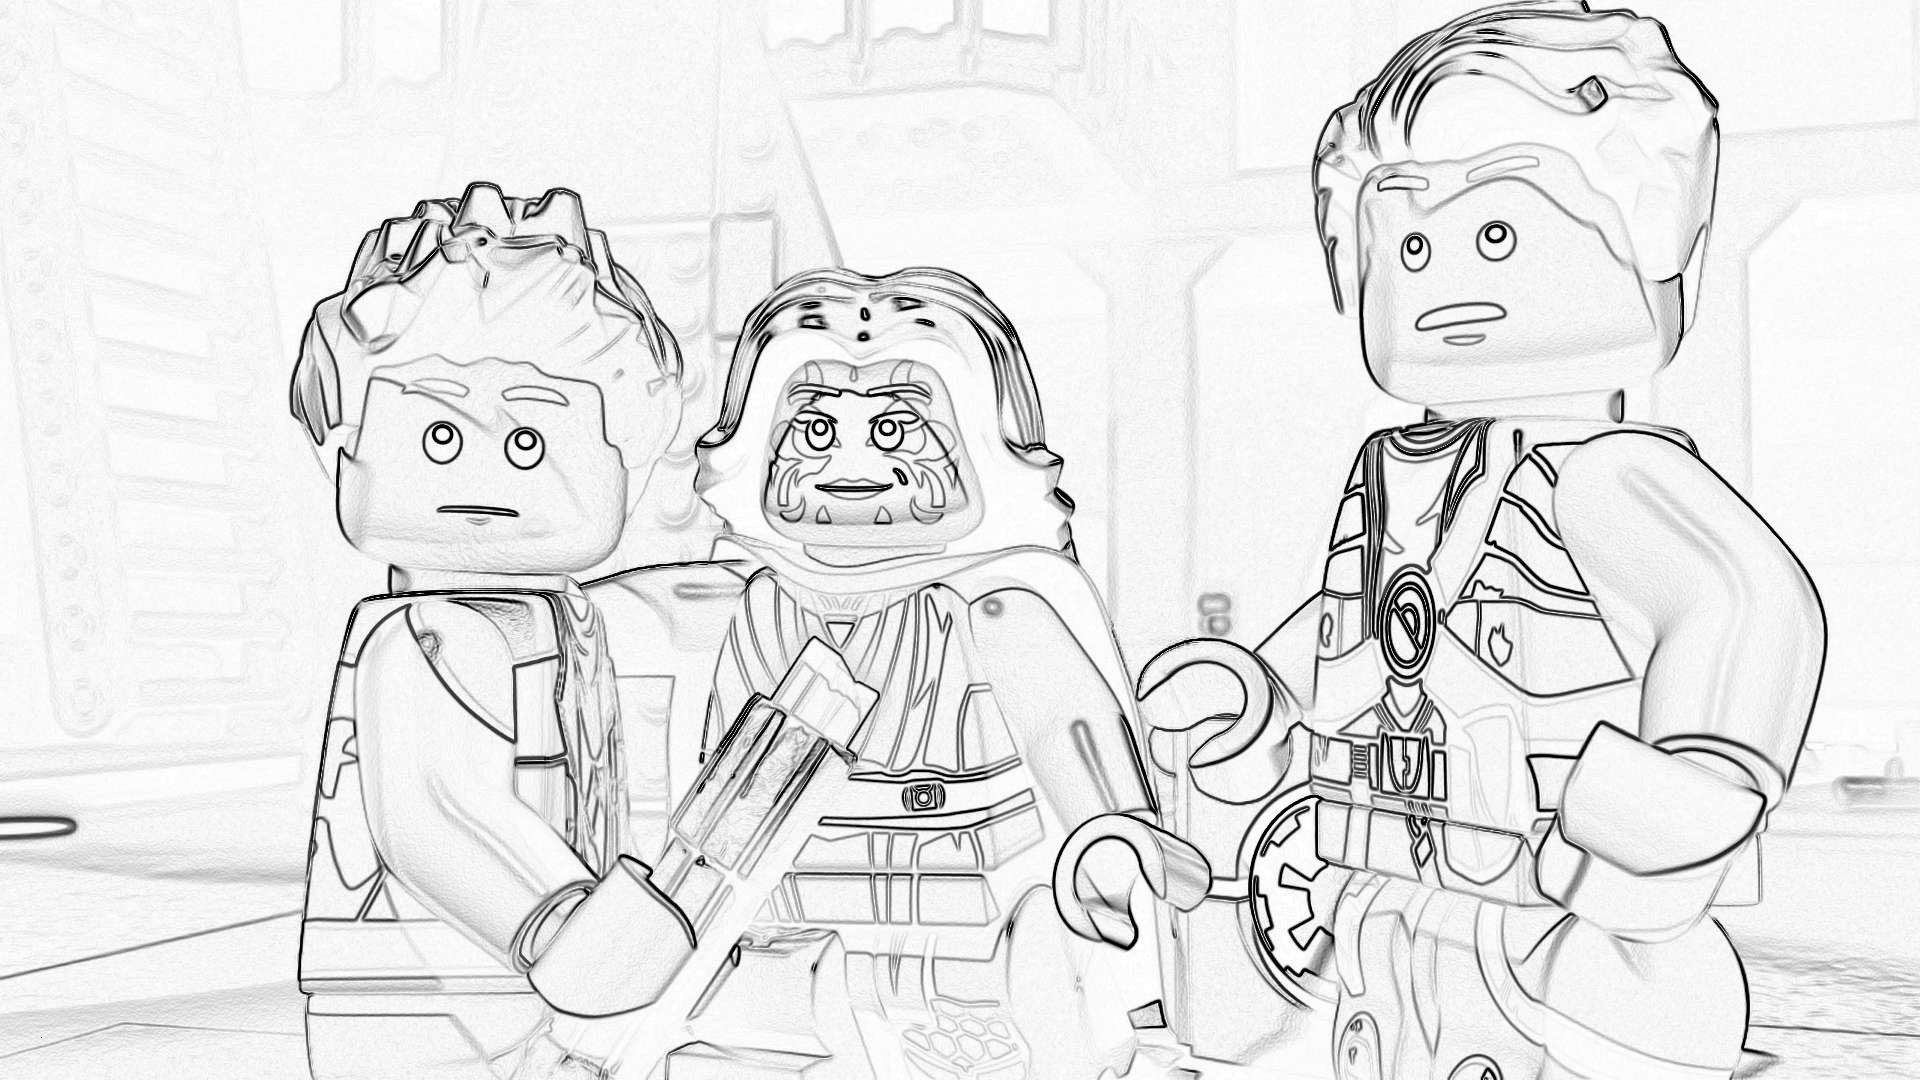 Lego Star Wars Ausmalbild Einzigartig Lego Star Wars 3 Coloring Pages Free Lego Christmas Coloring Pages Sammlung